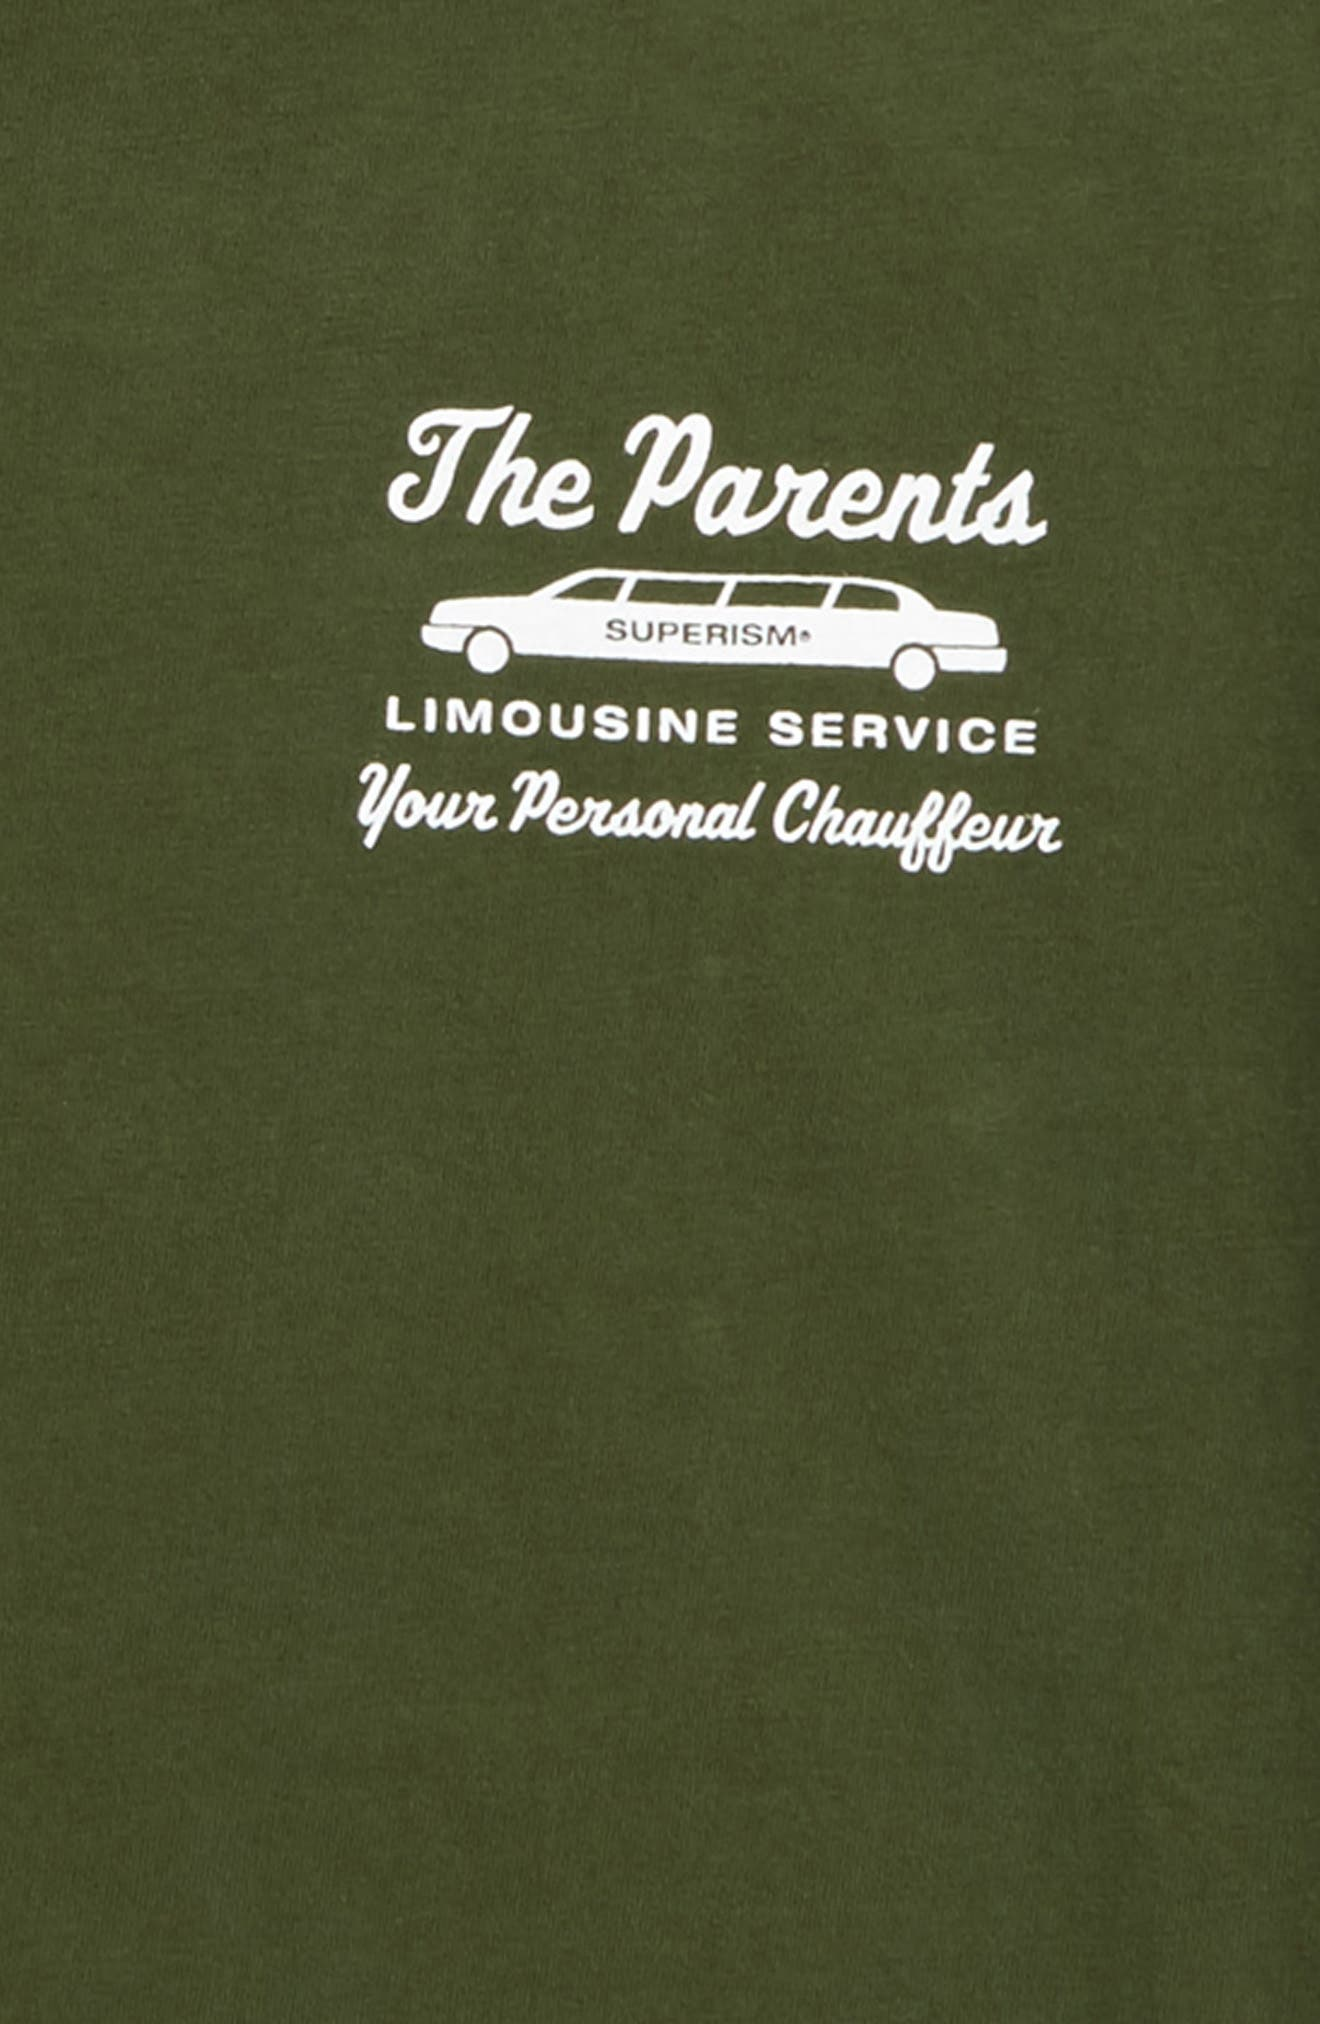 The Parents Limousine Service T-Shirt,                             Alternate thumbnail 3, color,                             300